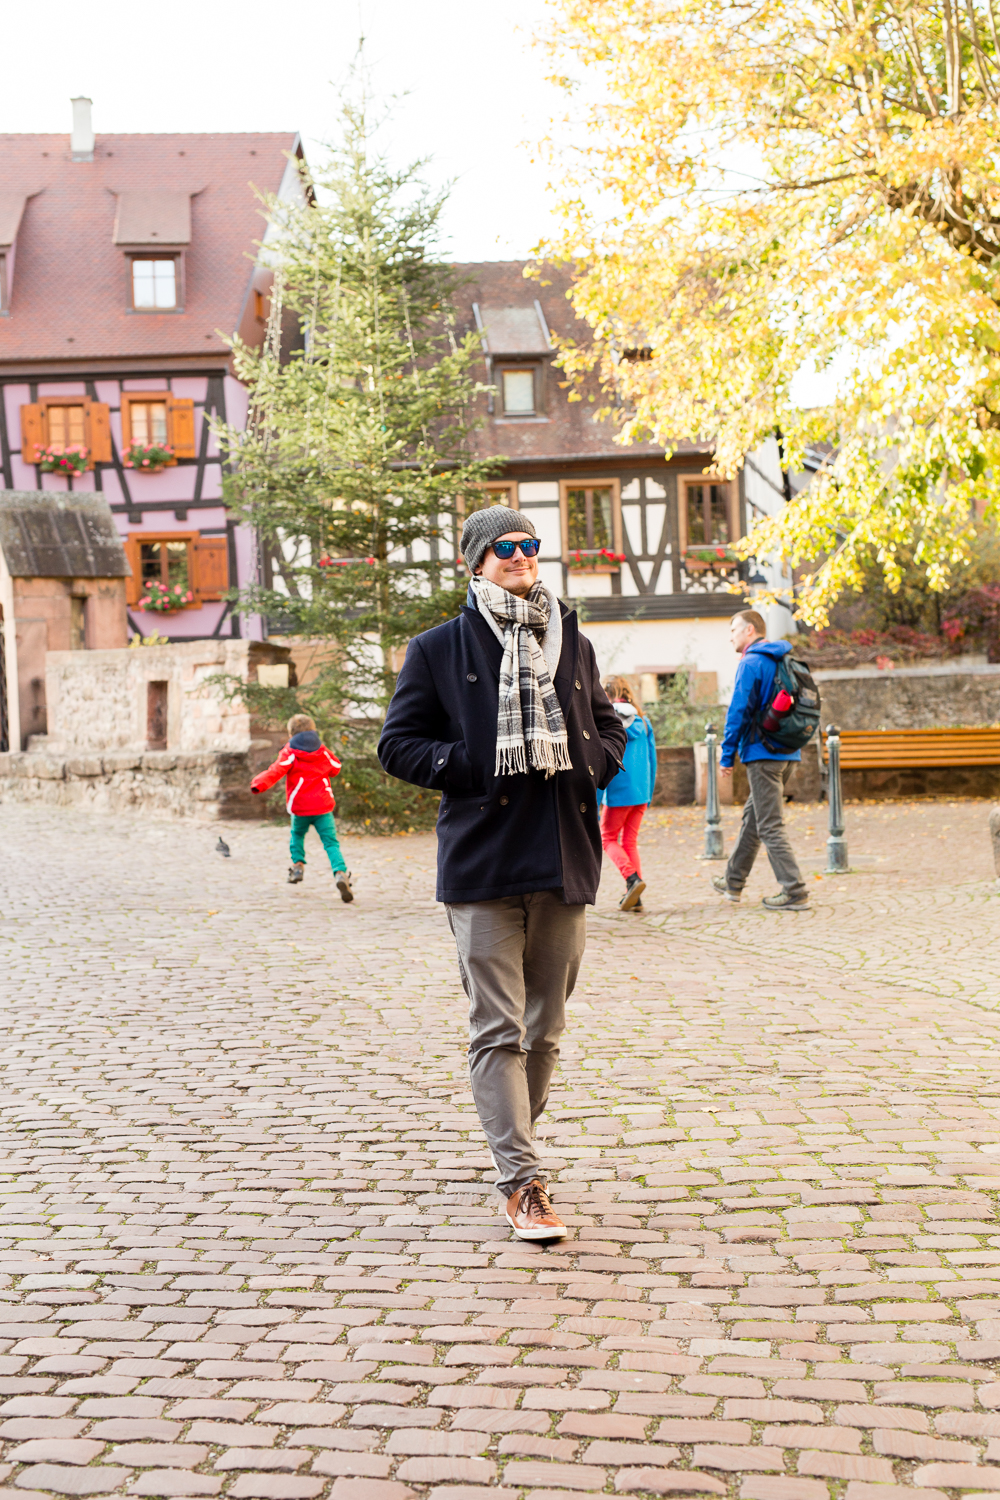 weekend-in-alsace-Kaysersberg-best-place-to-visit-france-7.jpg